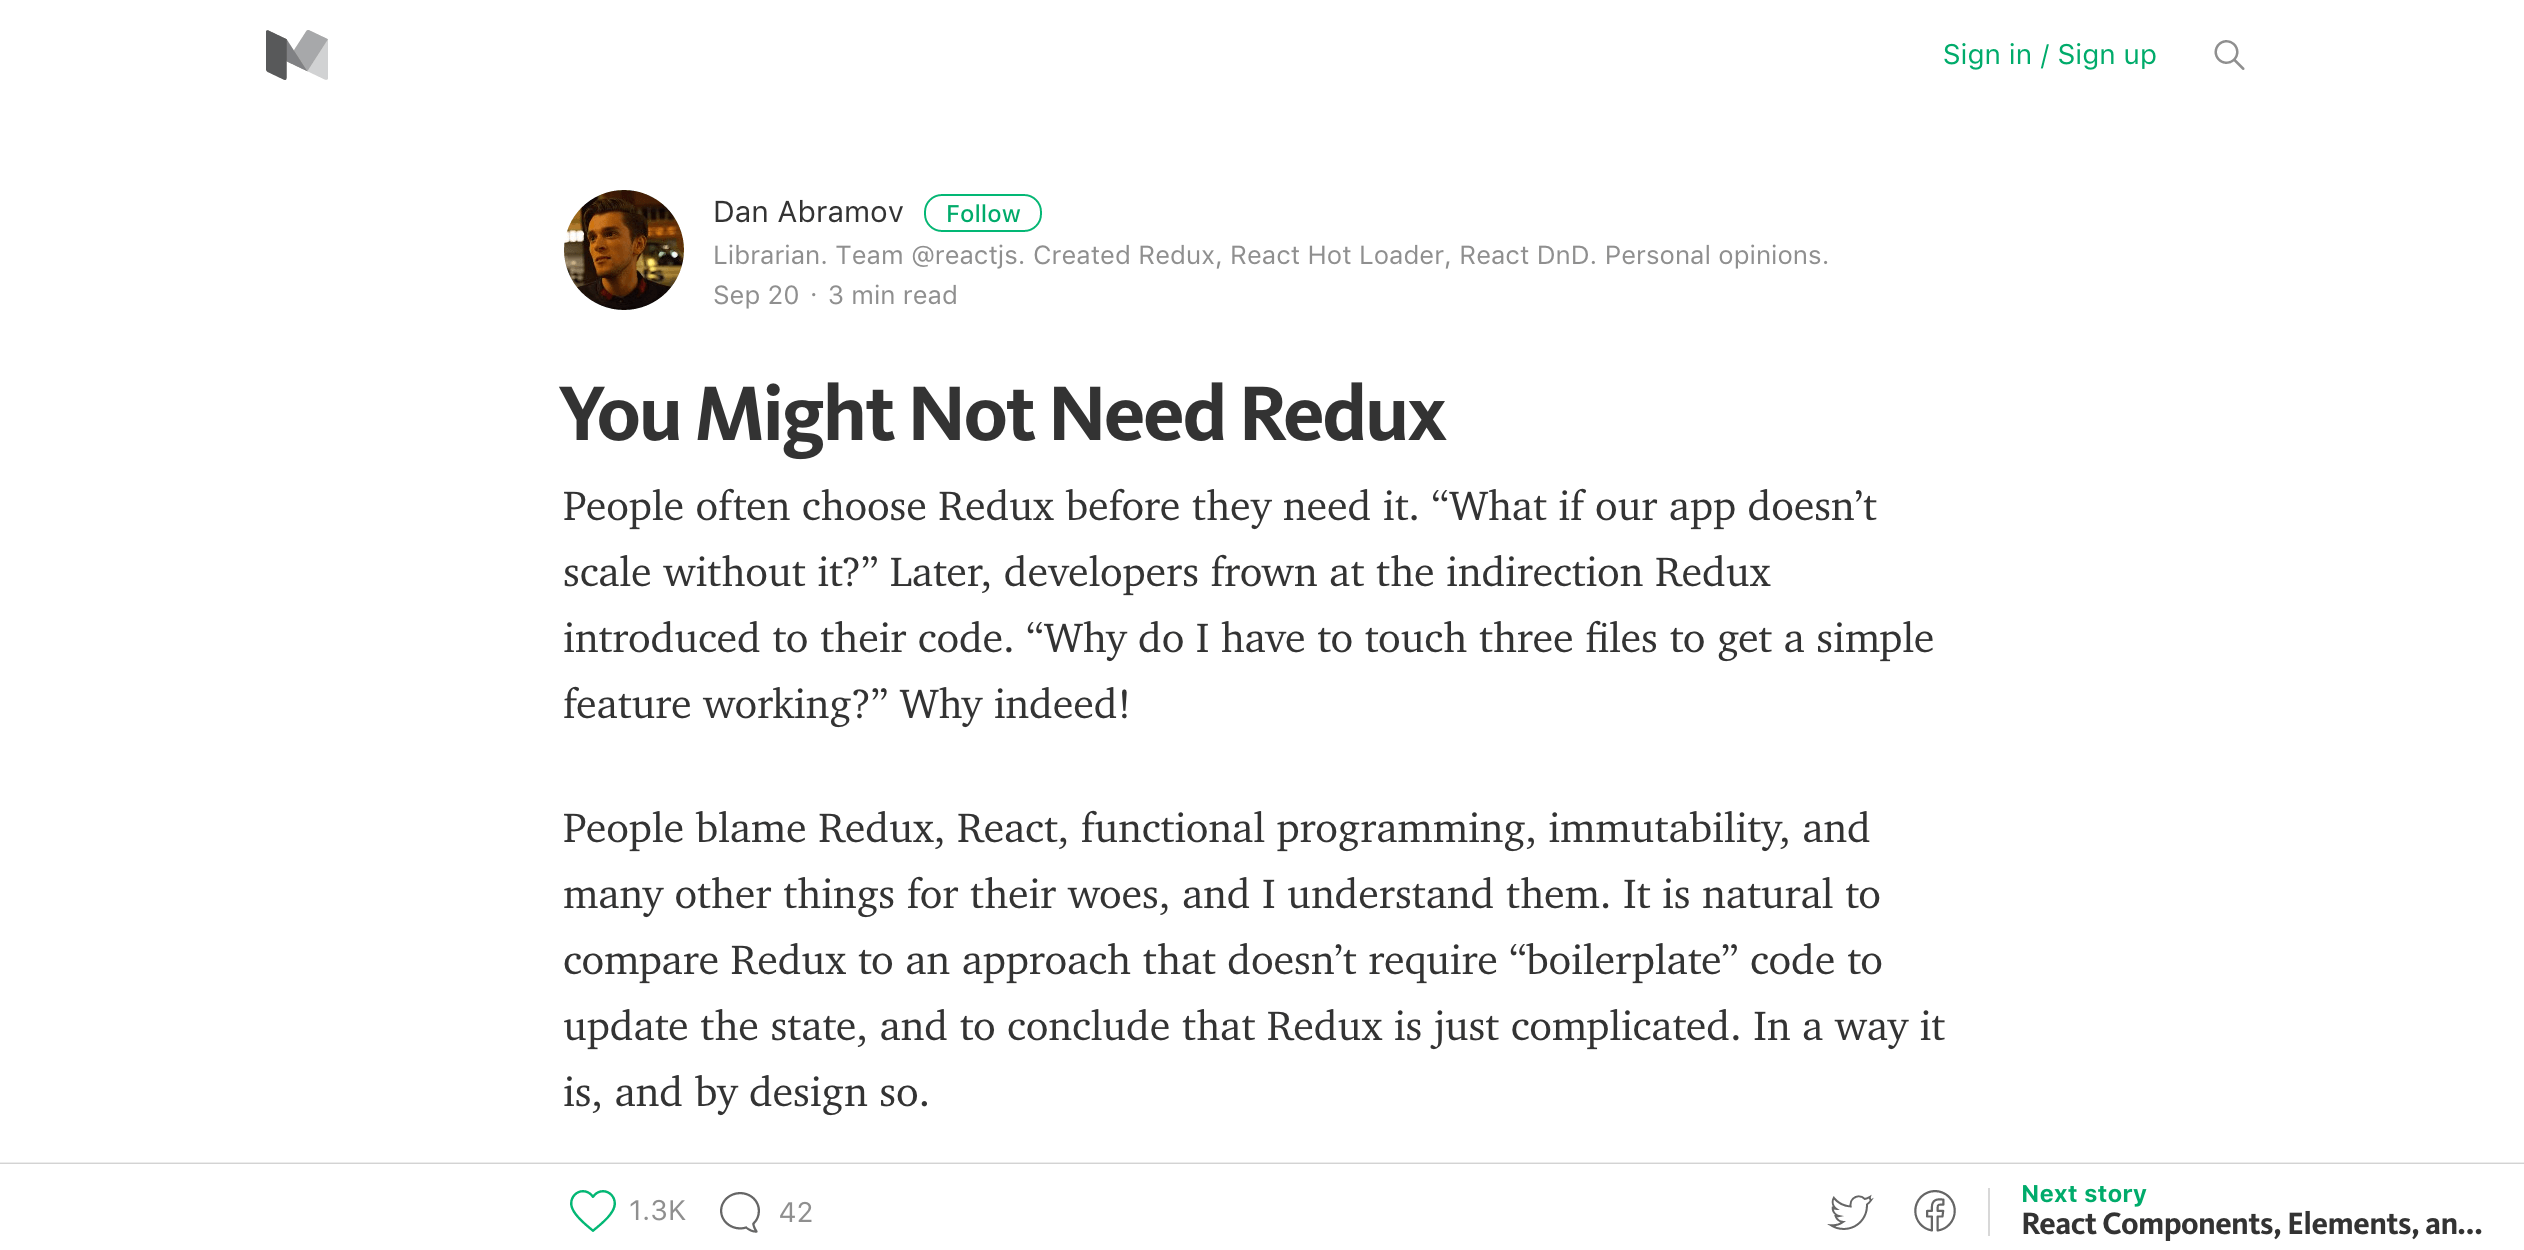 You Might Not Need Redux by Dan Abramov